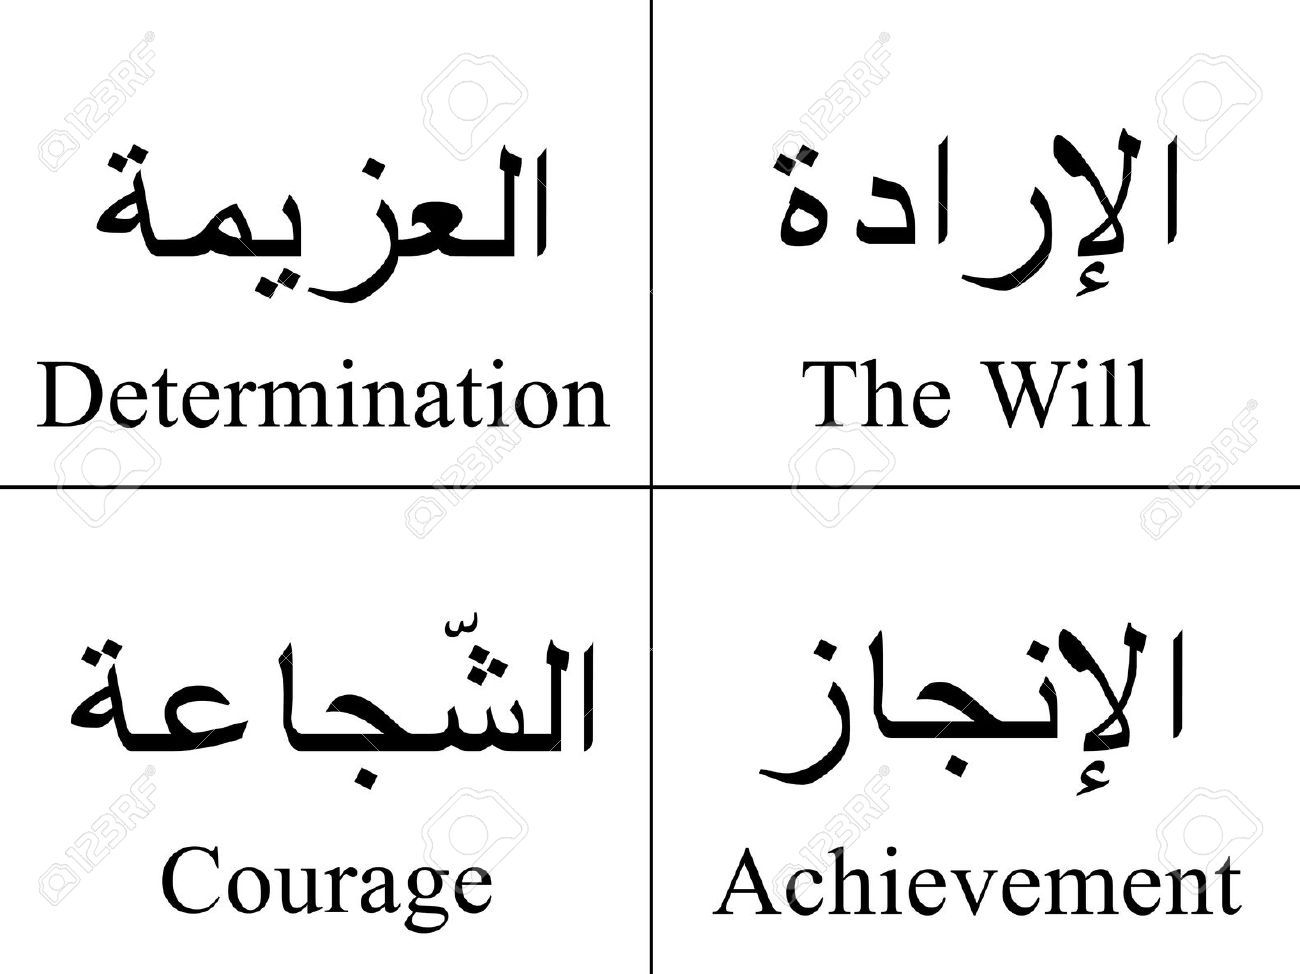 Arabic Calligraphy Tattoo Meanings Arabic Words With Their Meanings In English Arabic Quotes